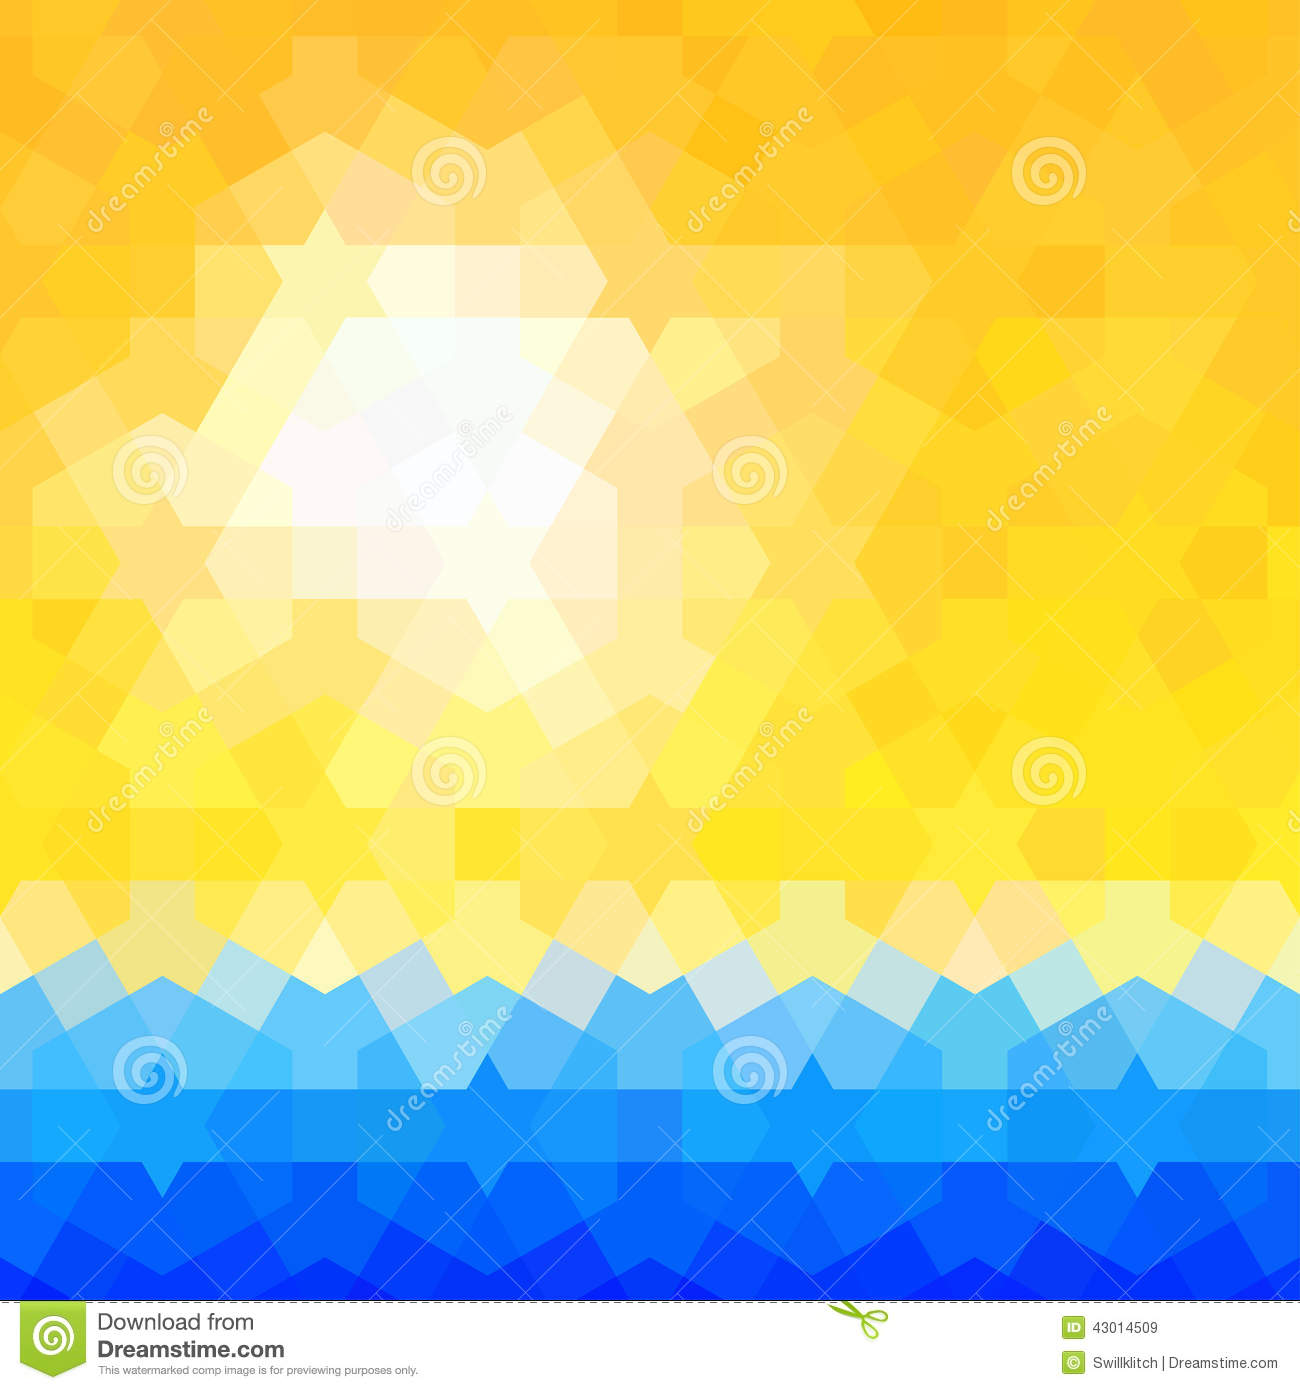 Summer Themed Background With Classic Arabic